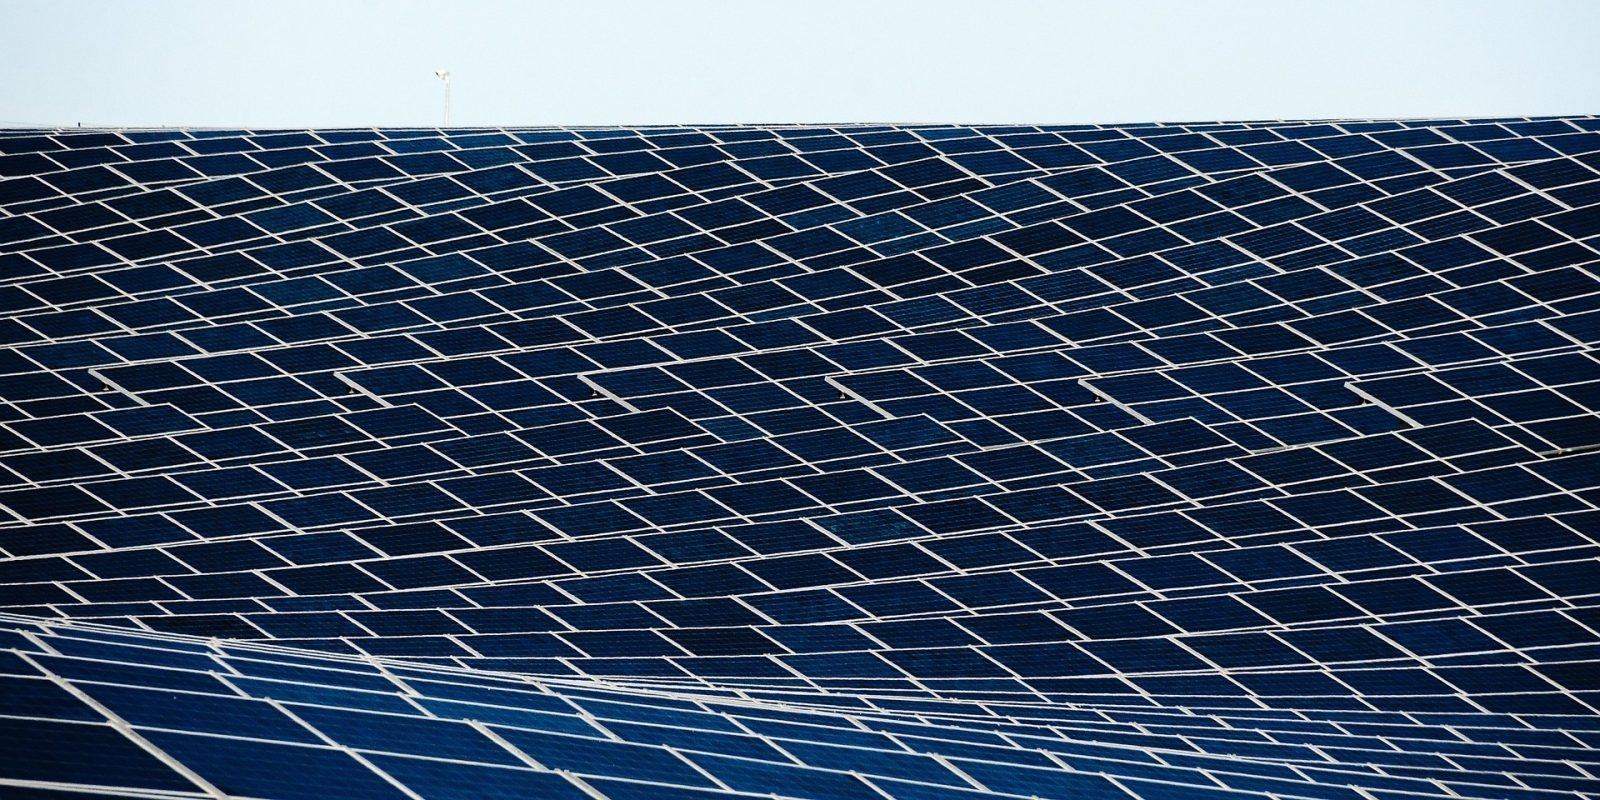 EGEB: World's largest solar plant now online, $4 5 trillion for 100